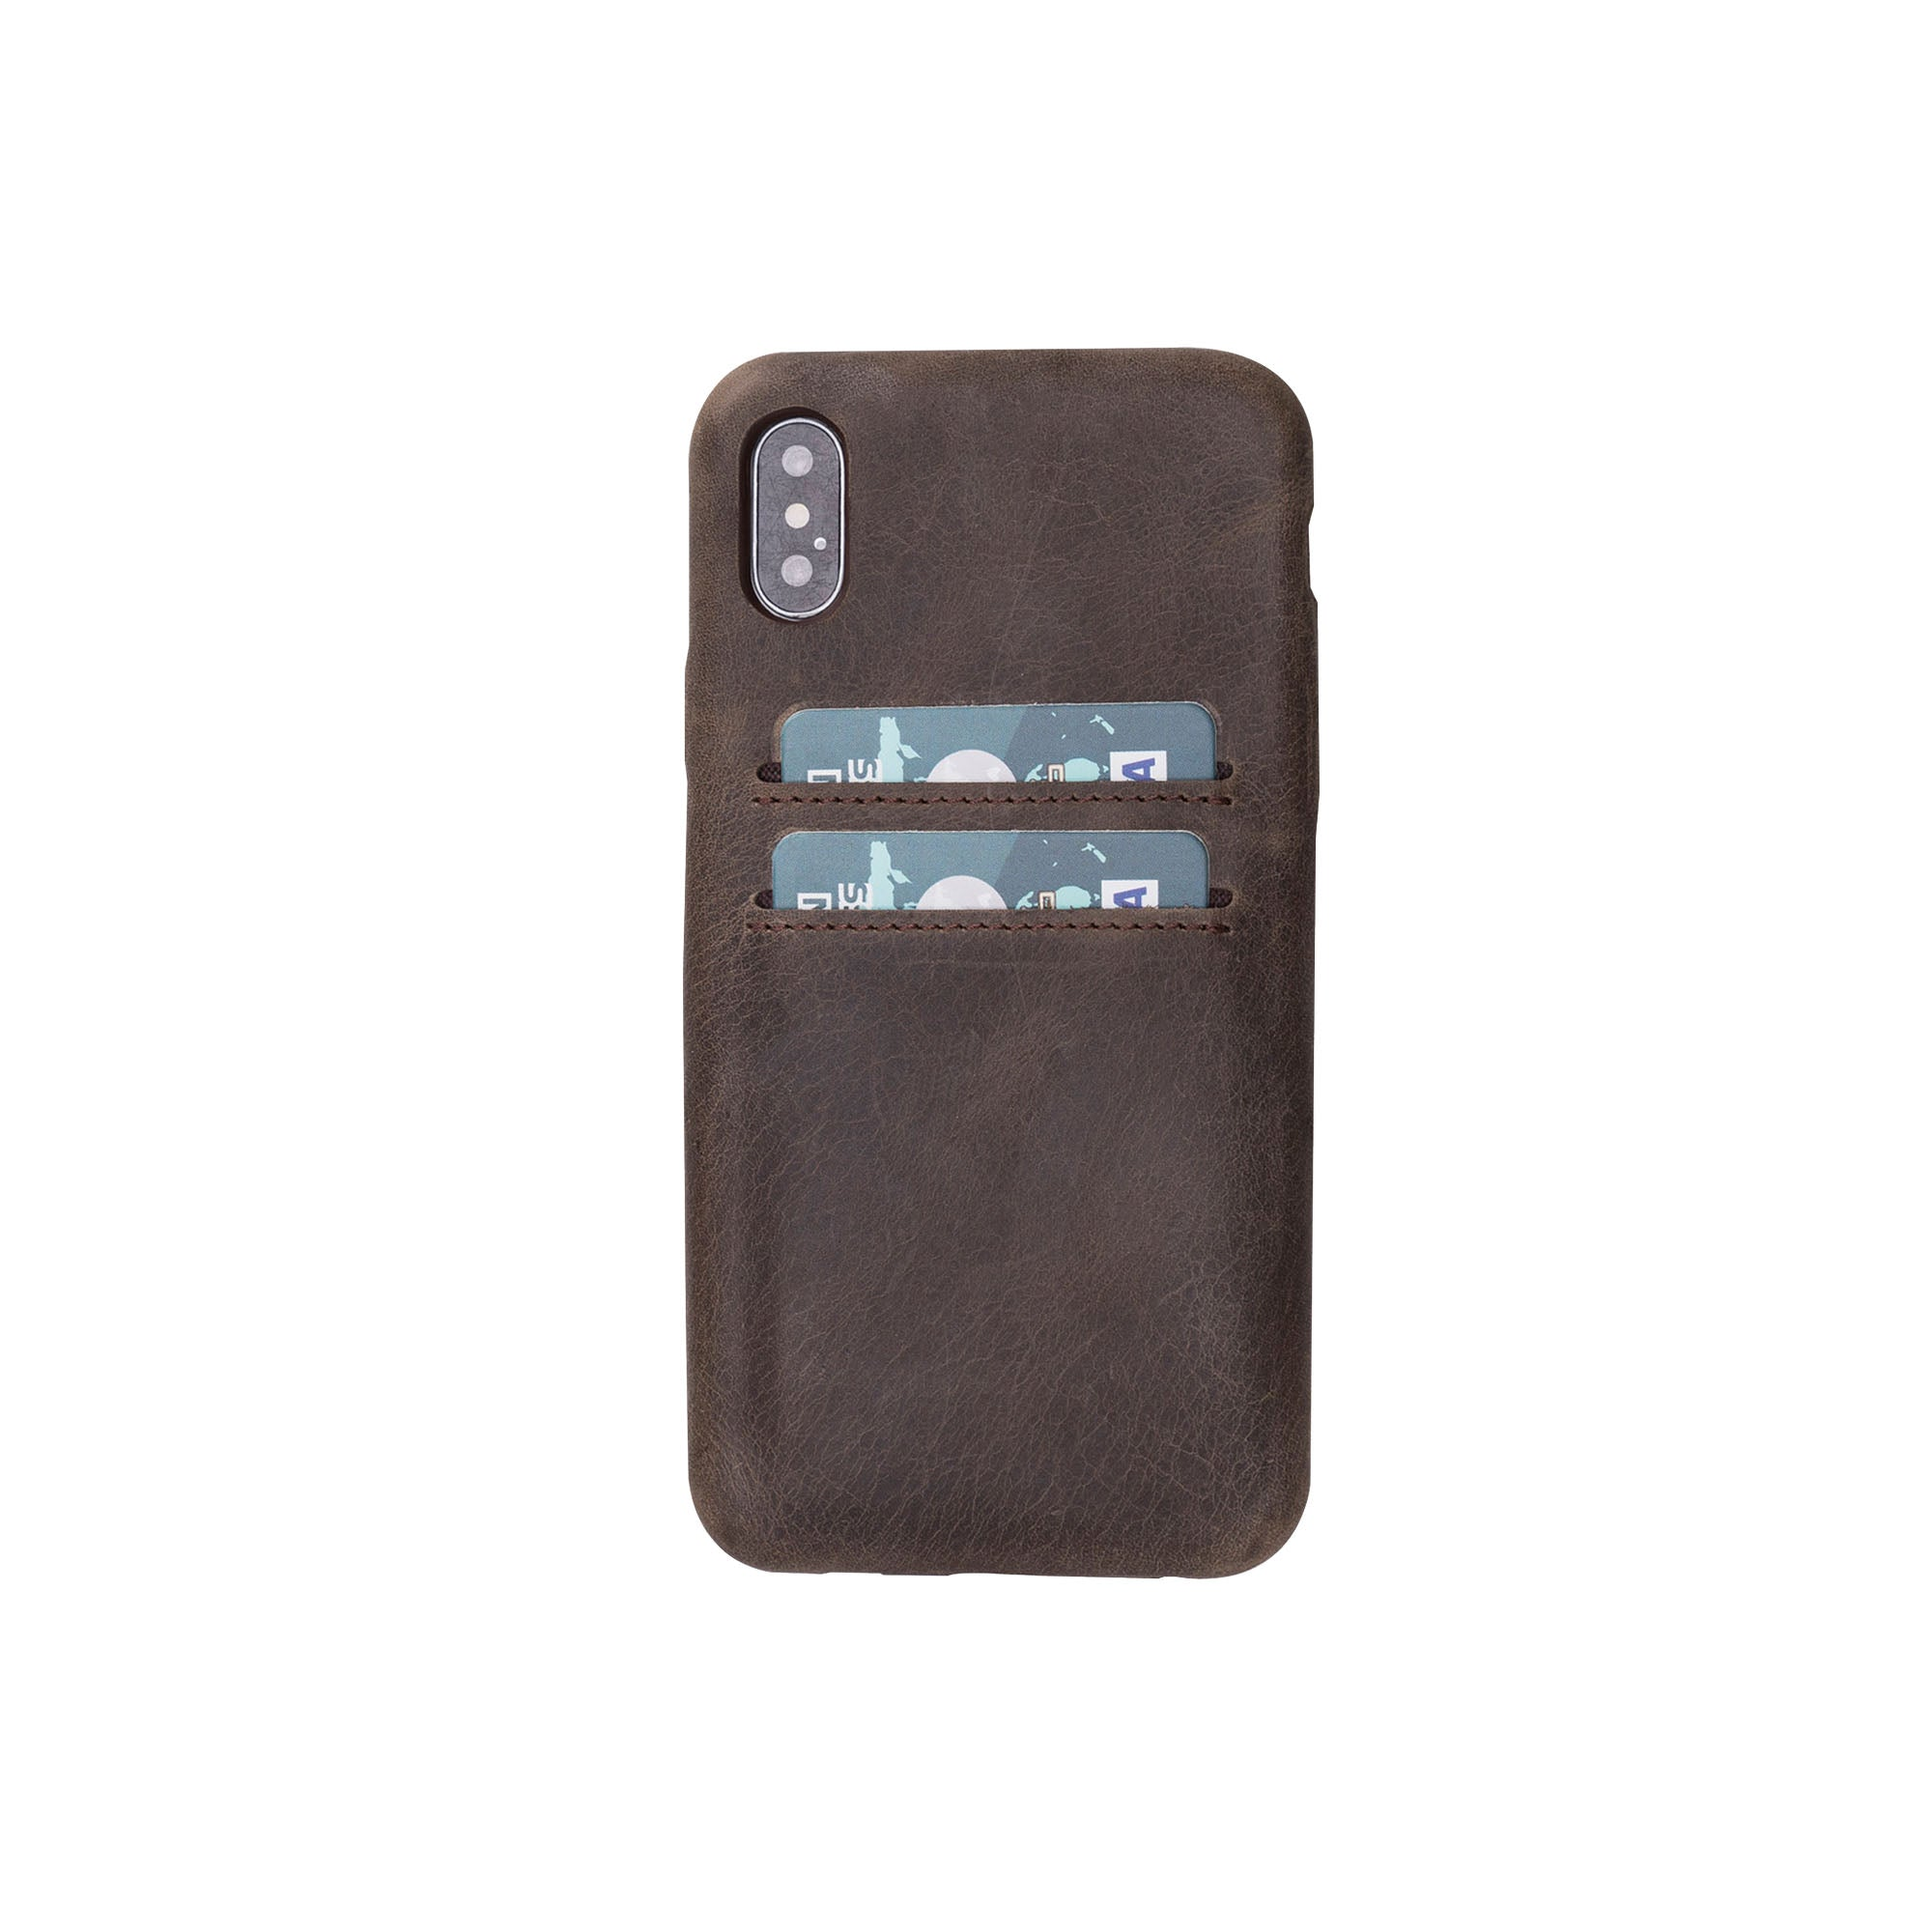 "Ultra Cover CC Leather Case for iPhone X / XS (5.8"") - BROWN"